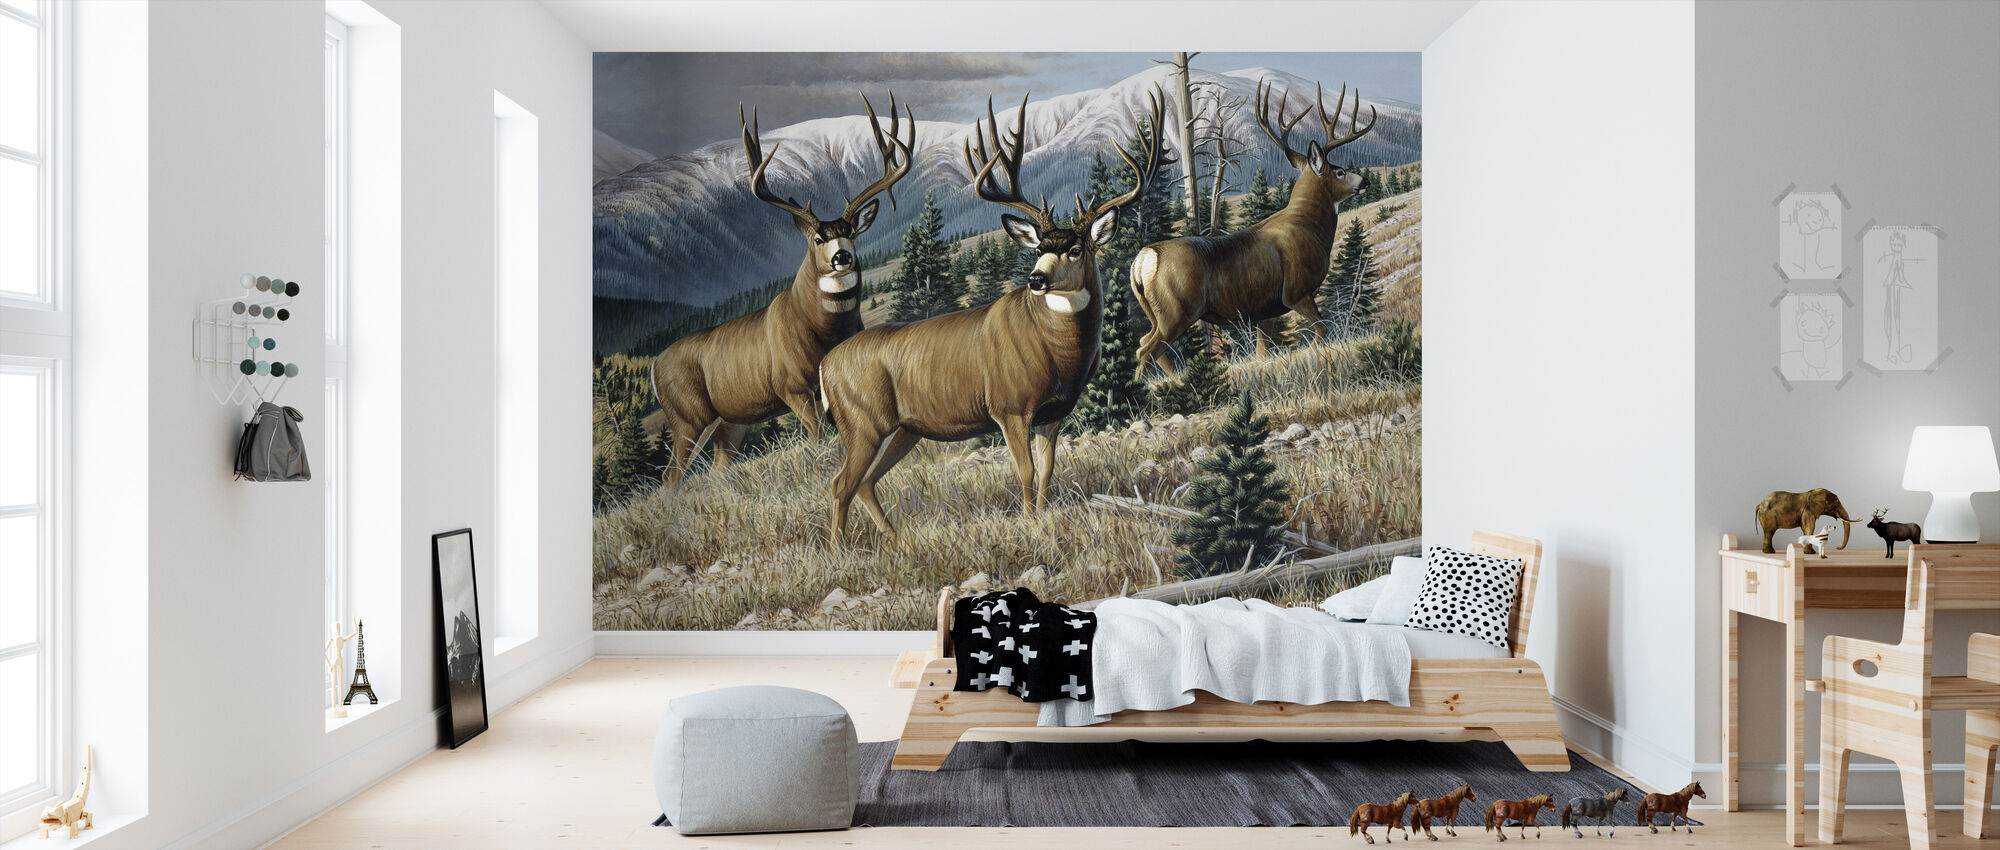 Up the Mountain - Wallpaper - Kids Room